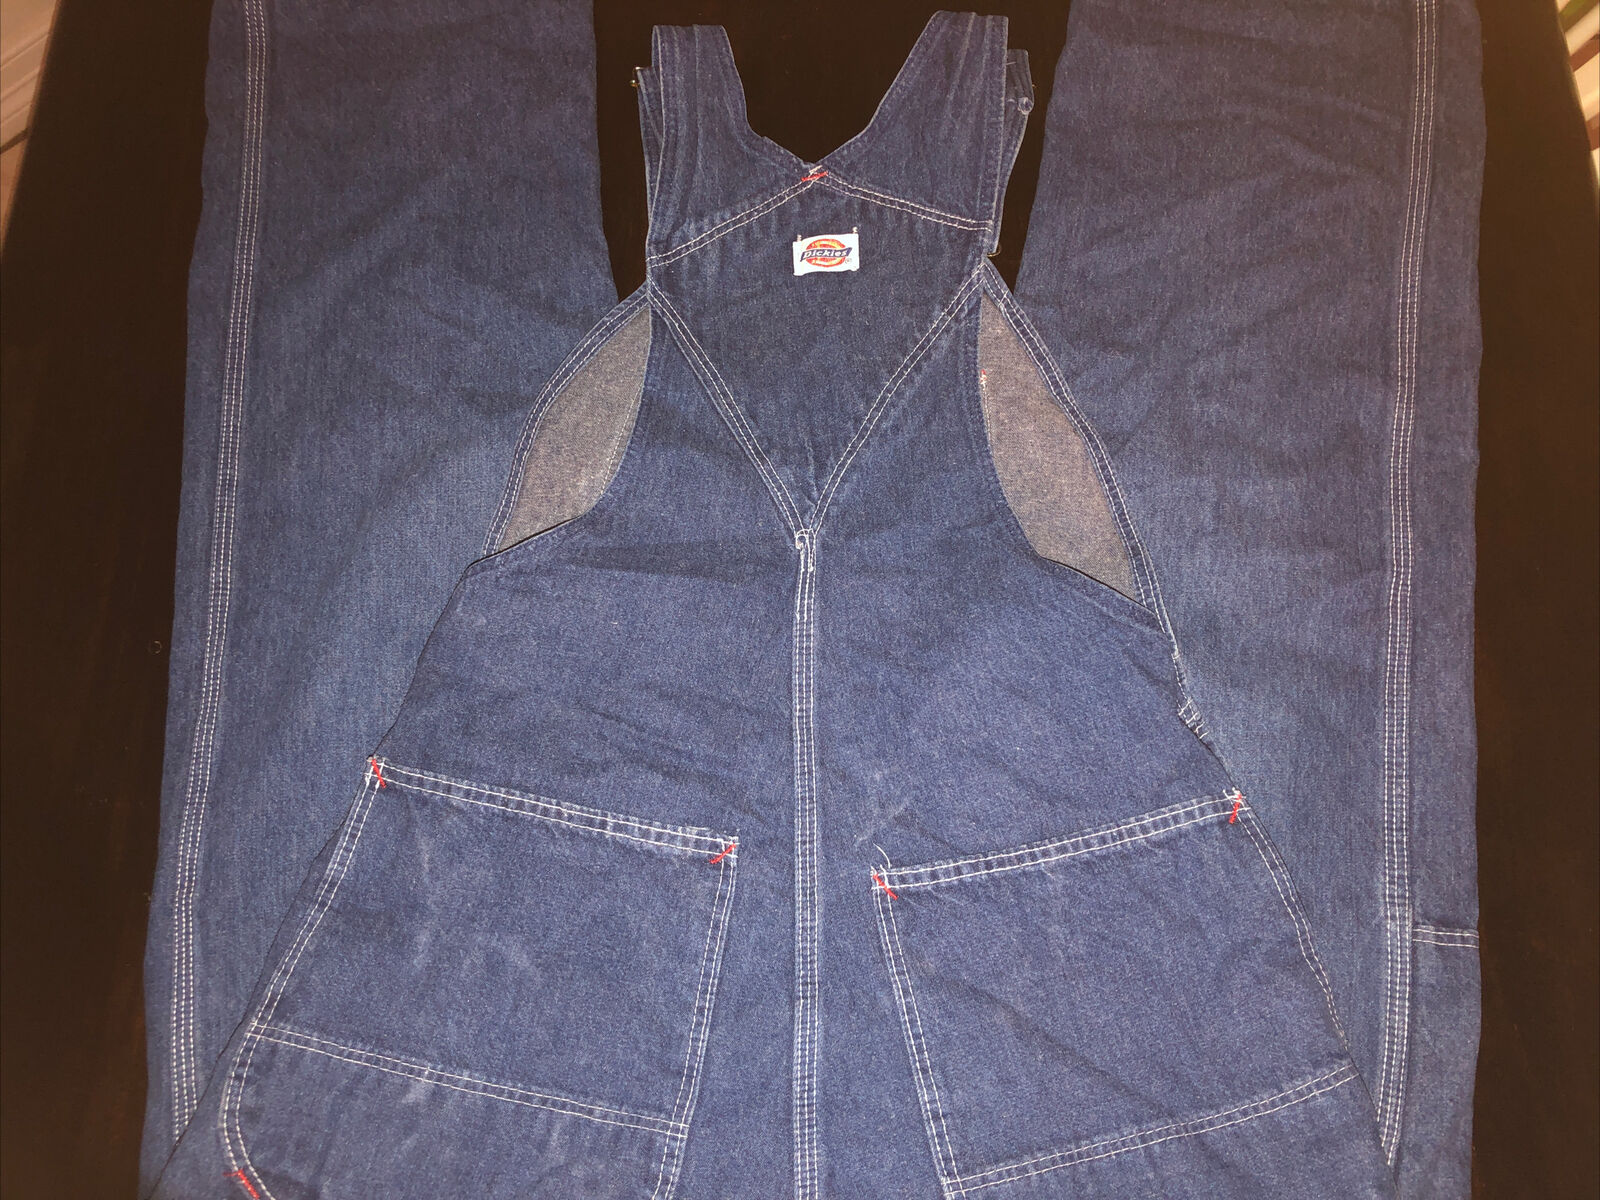 Dickies Overalls Size 31X32 - image 3